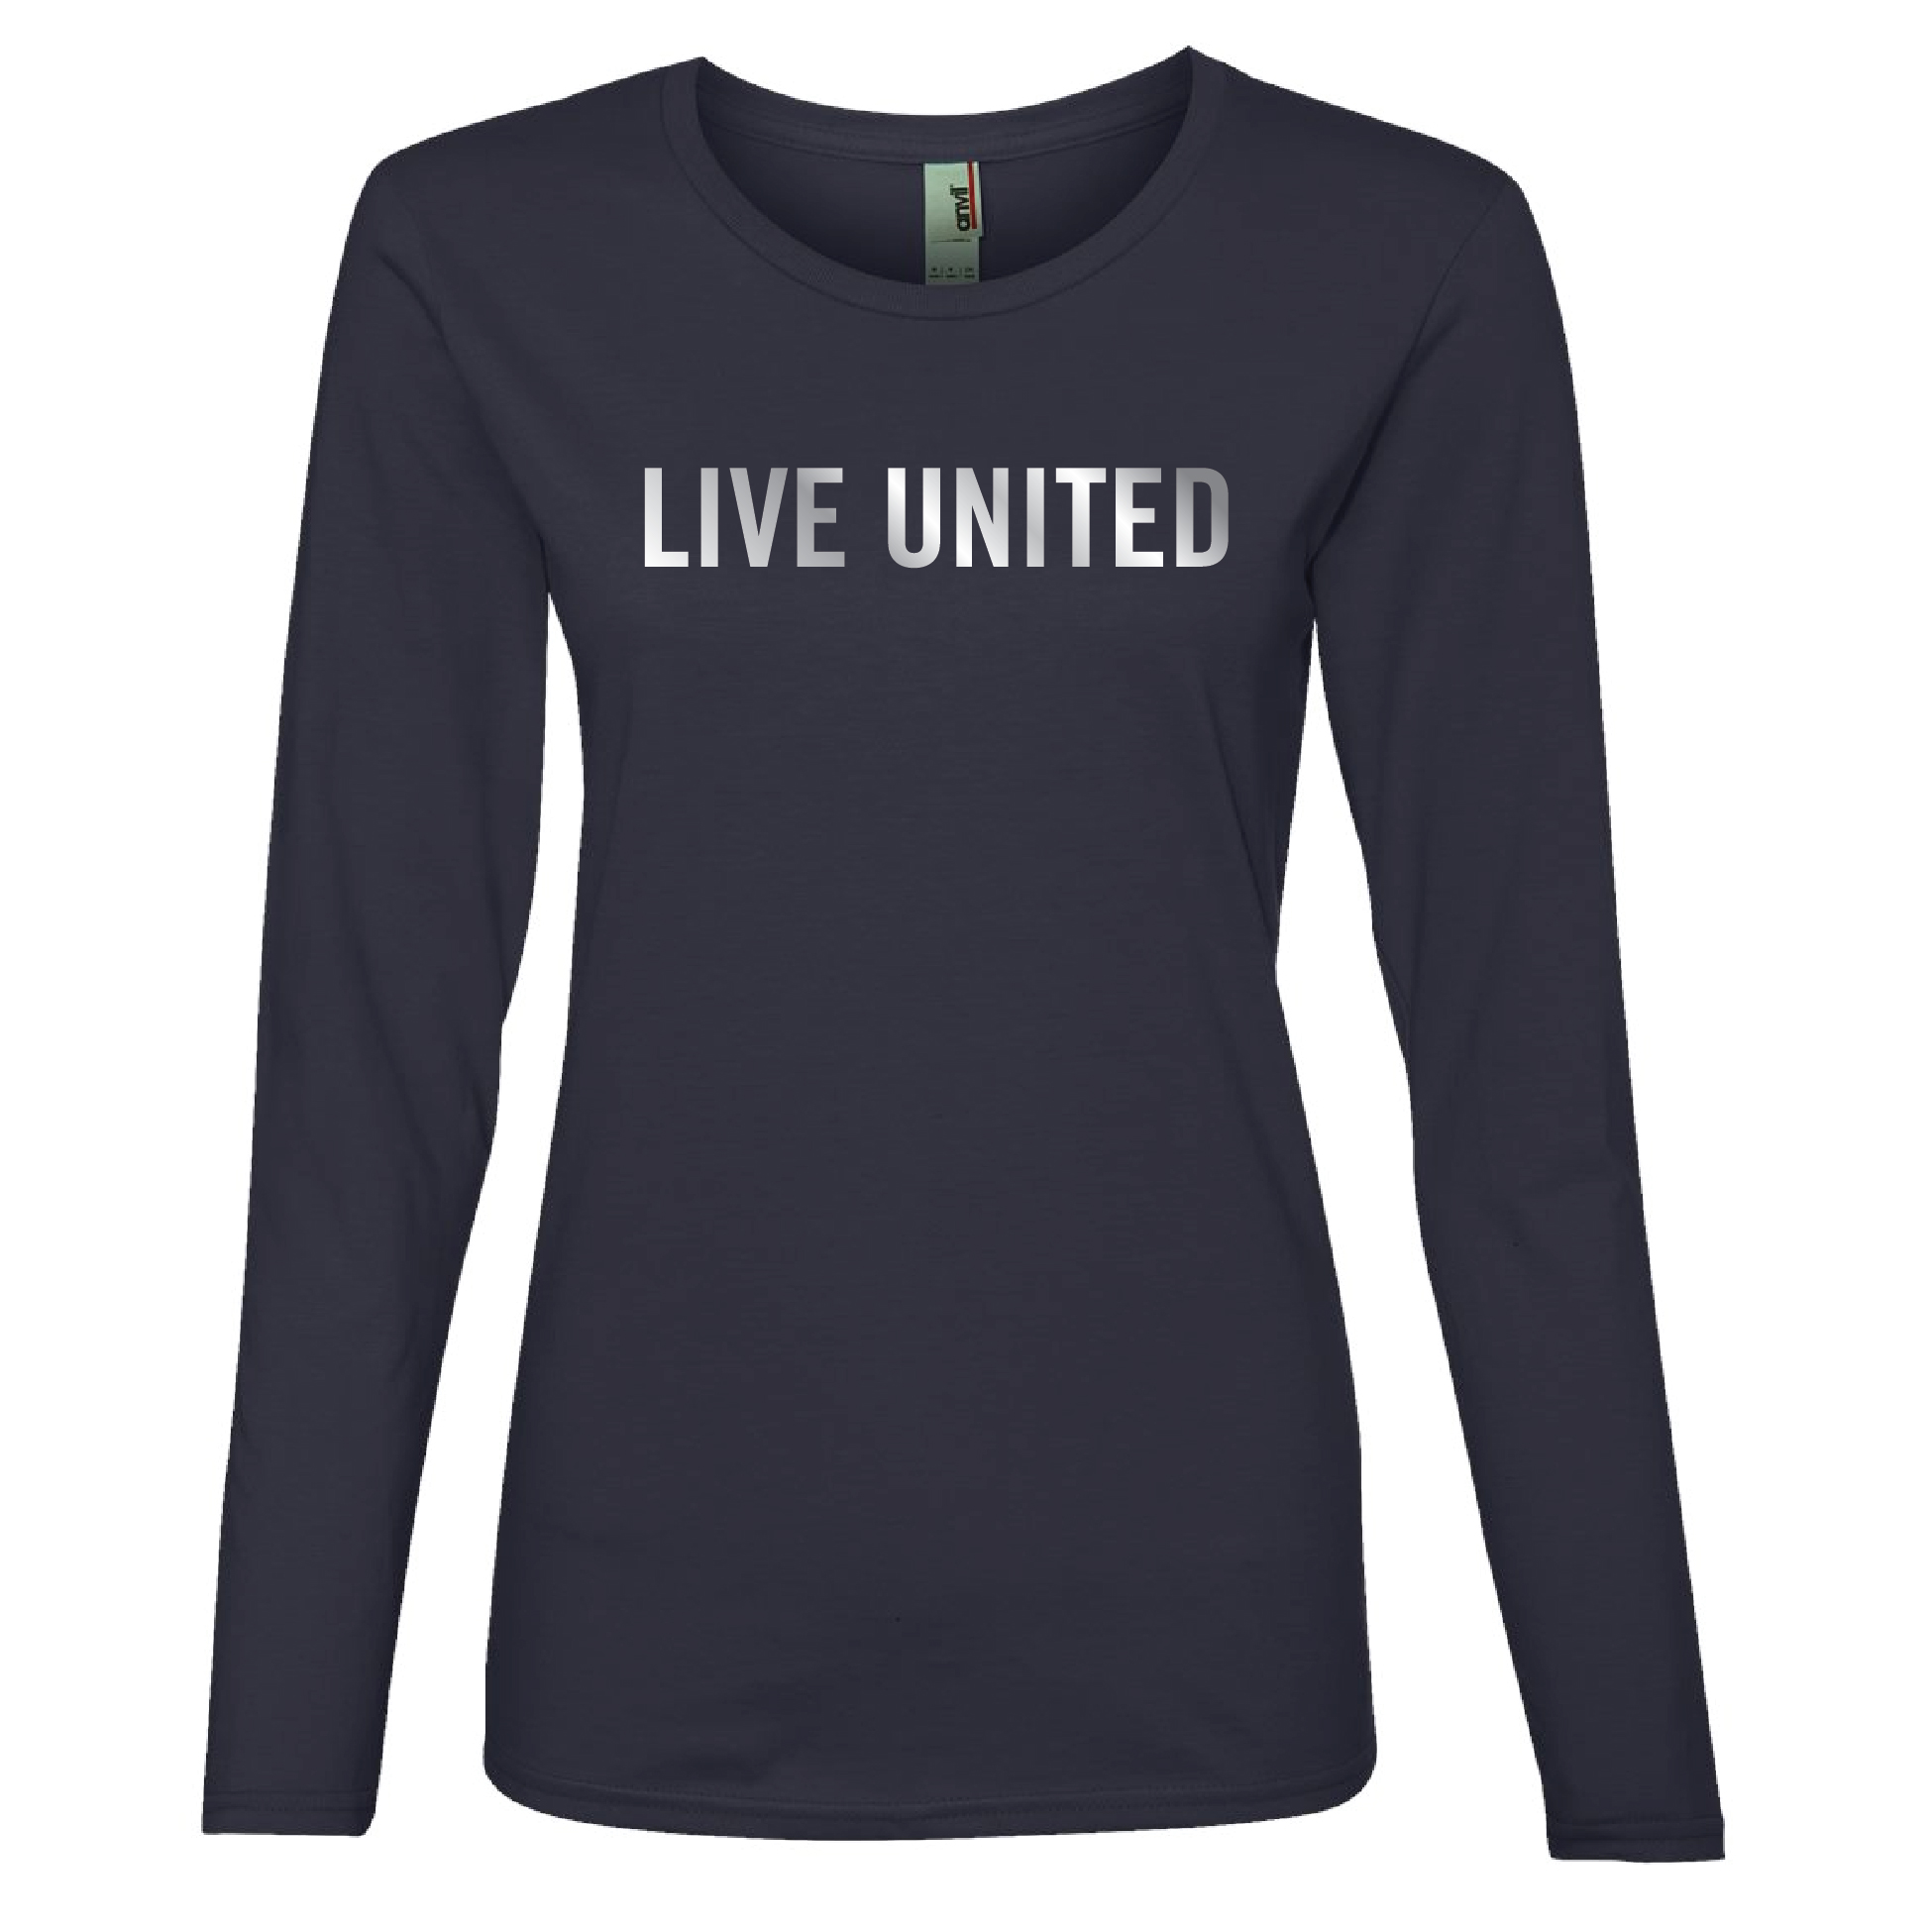 The LIVE UNITED tee in a flattering cut with a shiny twist: the LIVE UNITED logo is shiny metallic. Cotton.